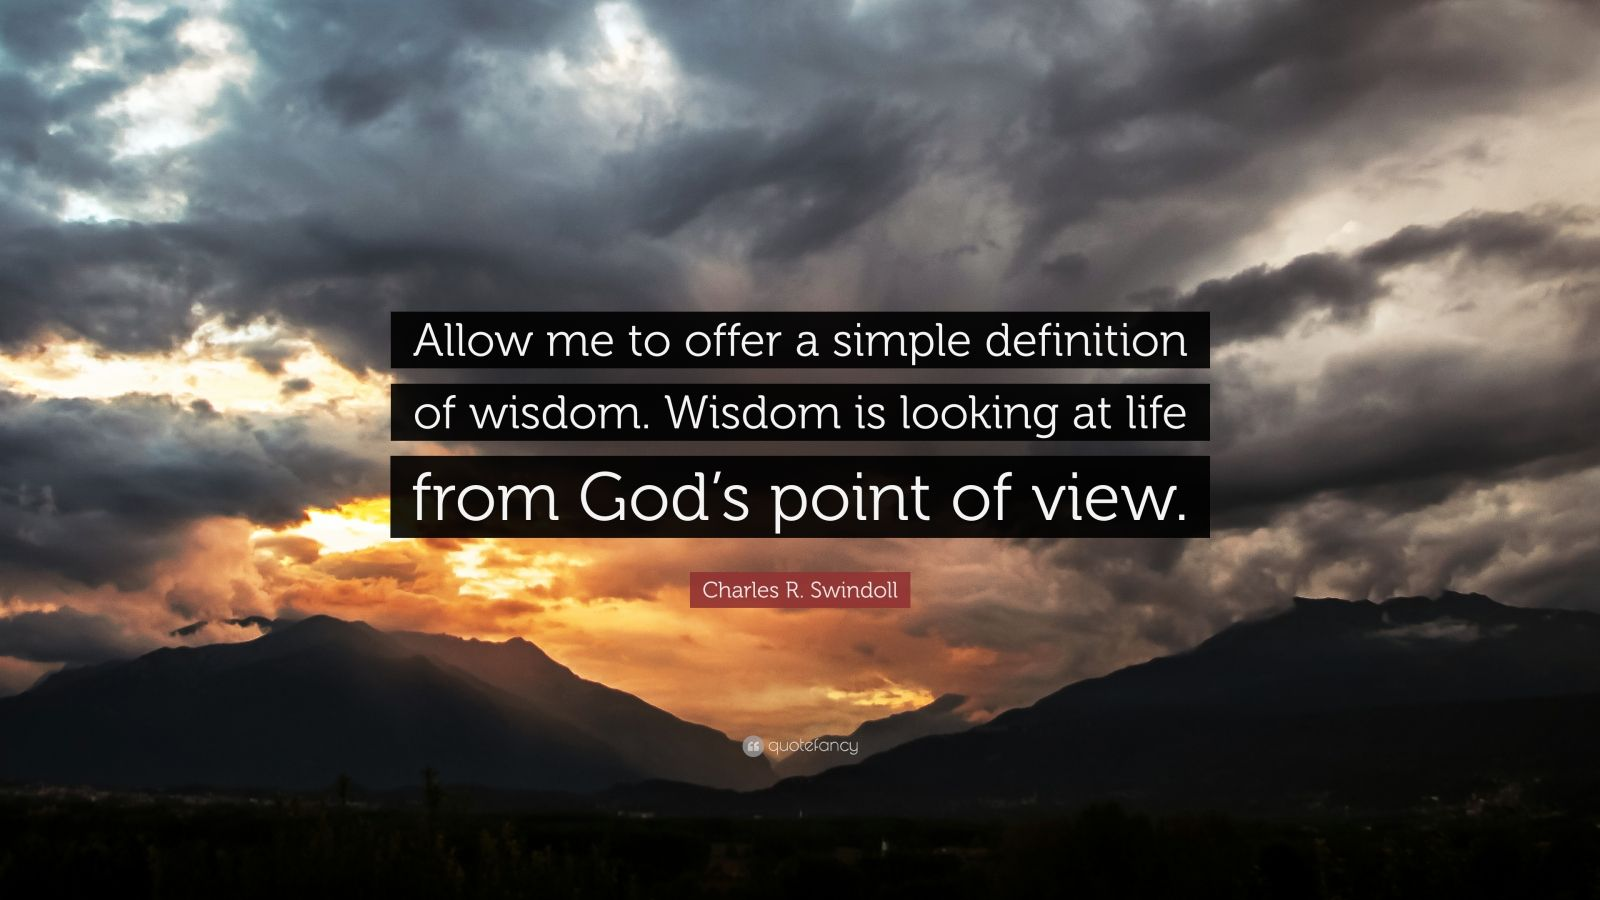 """Charles R. Swindoll Quote: """"Allow me to offer a simple definition of wisdom. Wisdom is looking at life from God's point of view."""""""